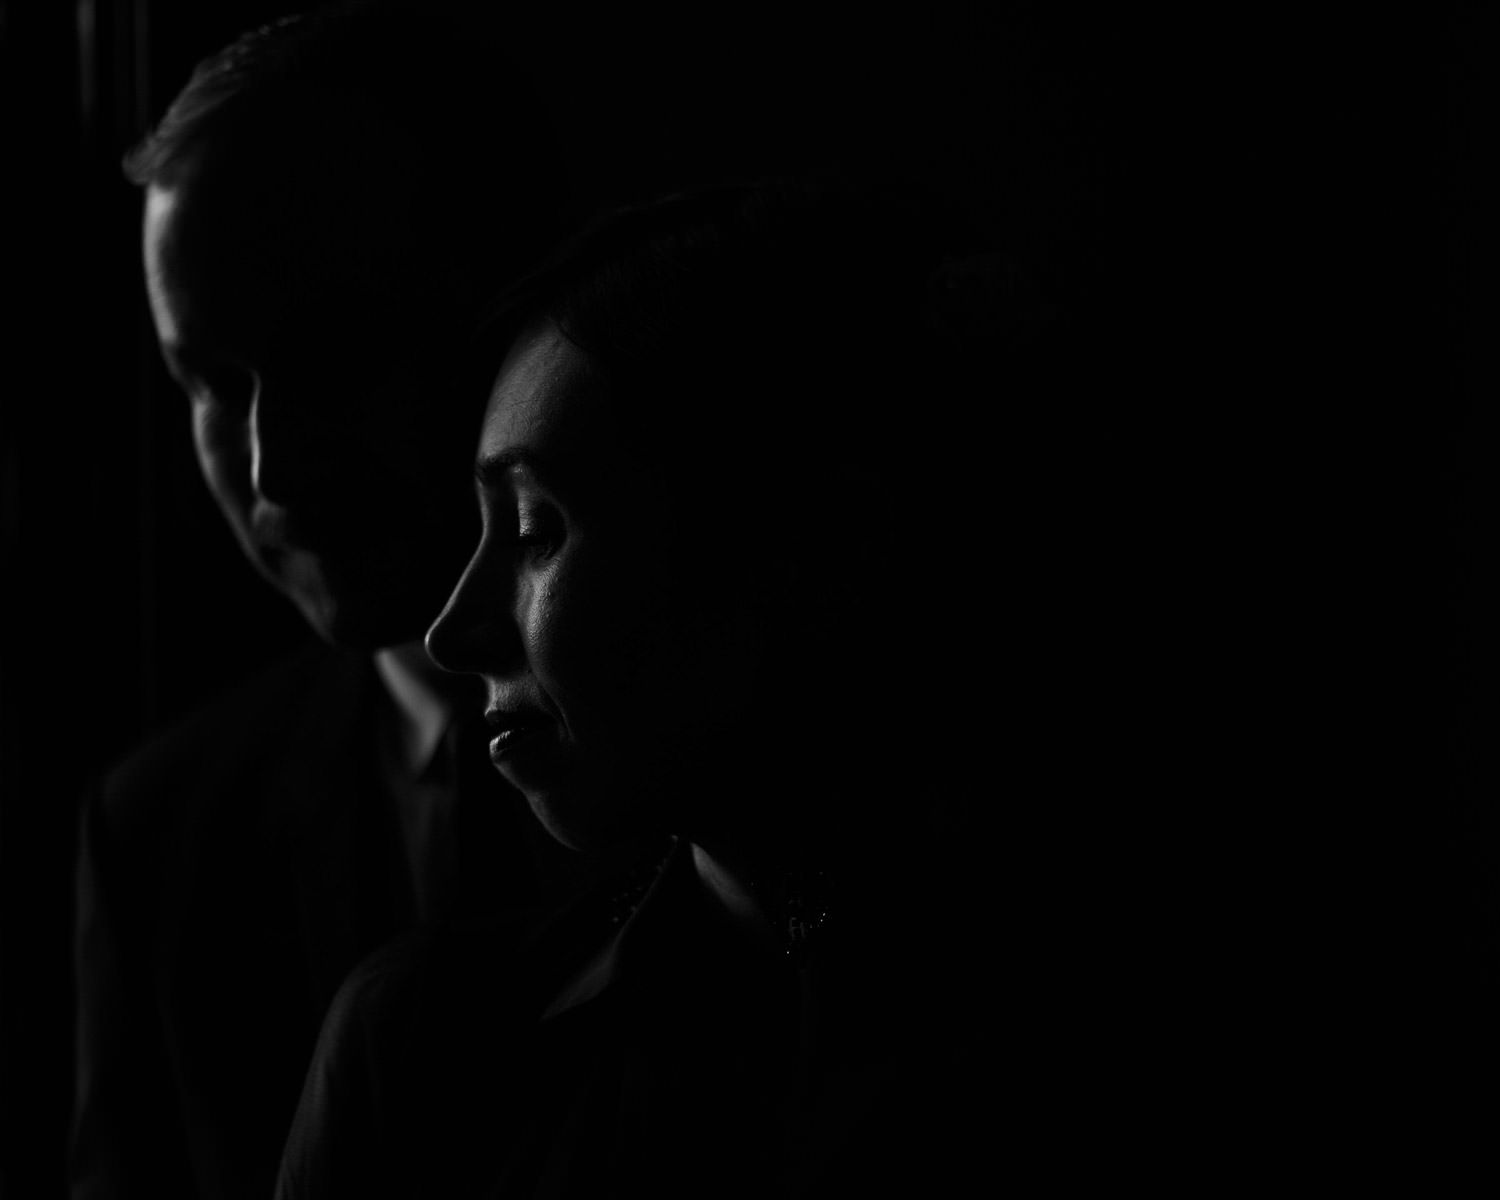 Moody black and white portrait of the bride and groom taken at Maxwell Mansion in Lake geneva